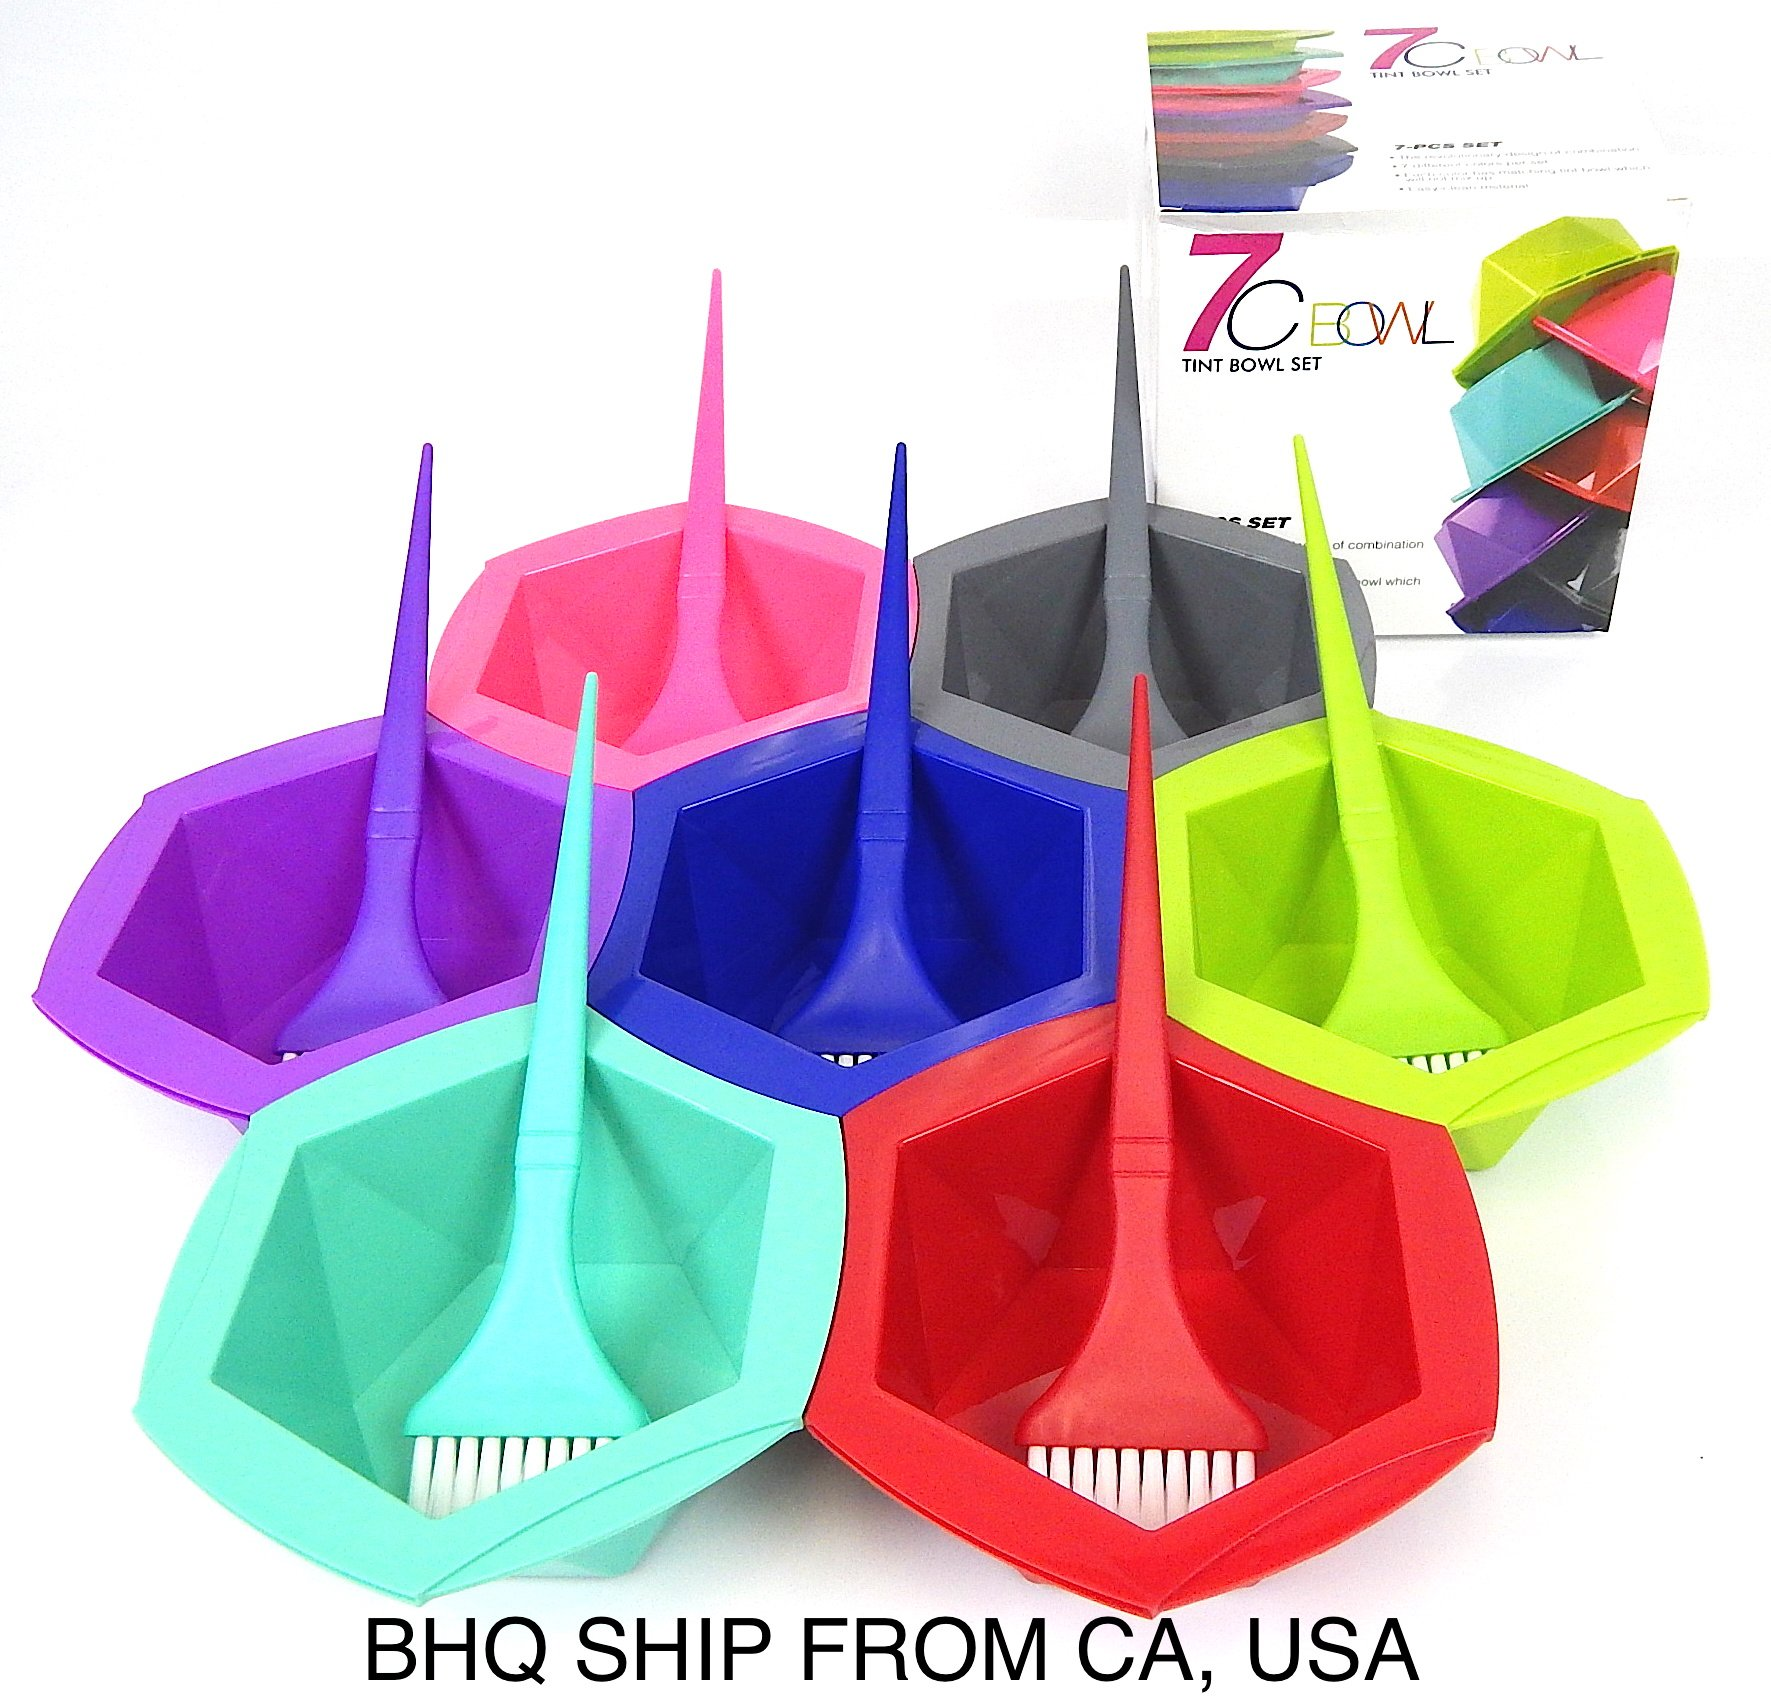 7-Color Rainbow Hair Dye Brush and Bowl Set for Hair Coloring by Beauty Headquarters